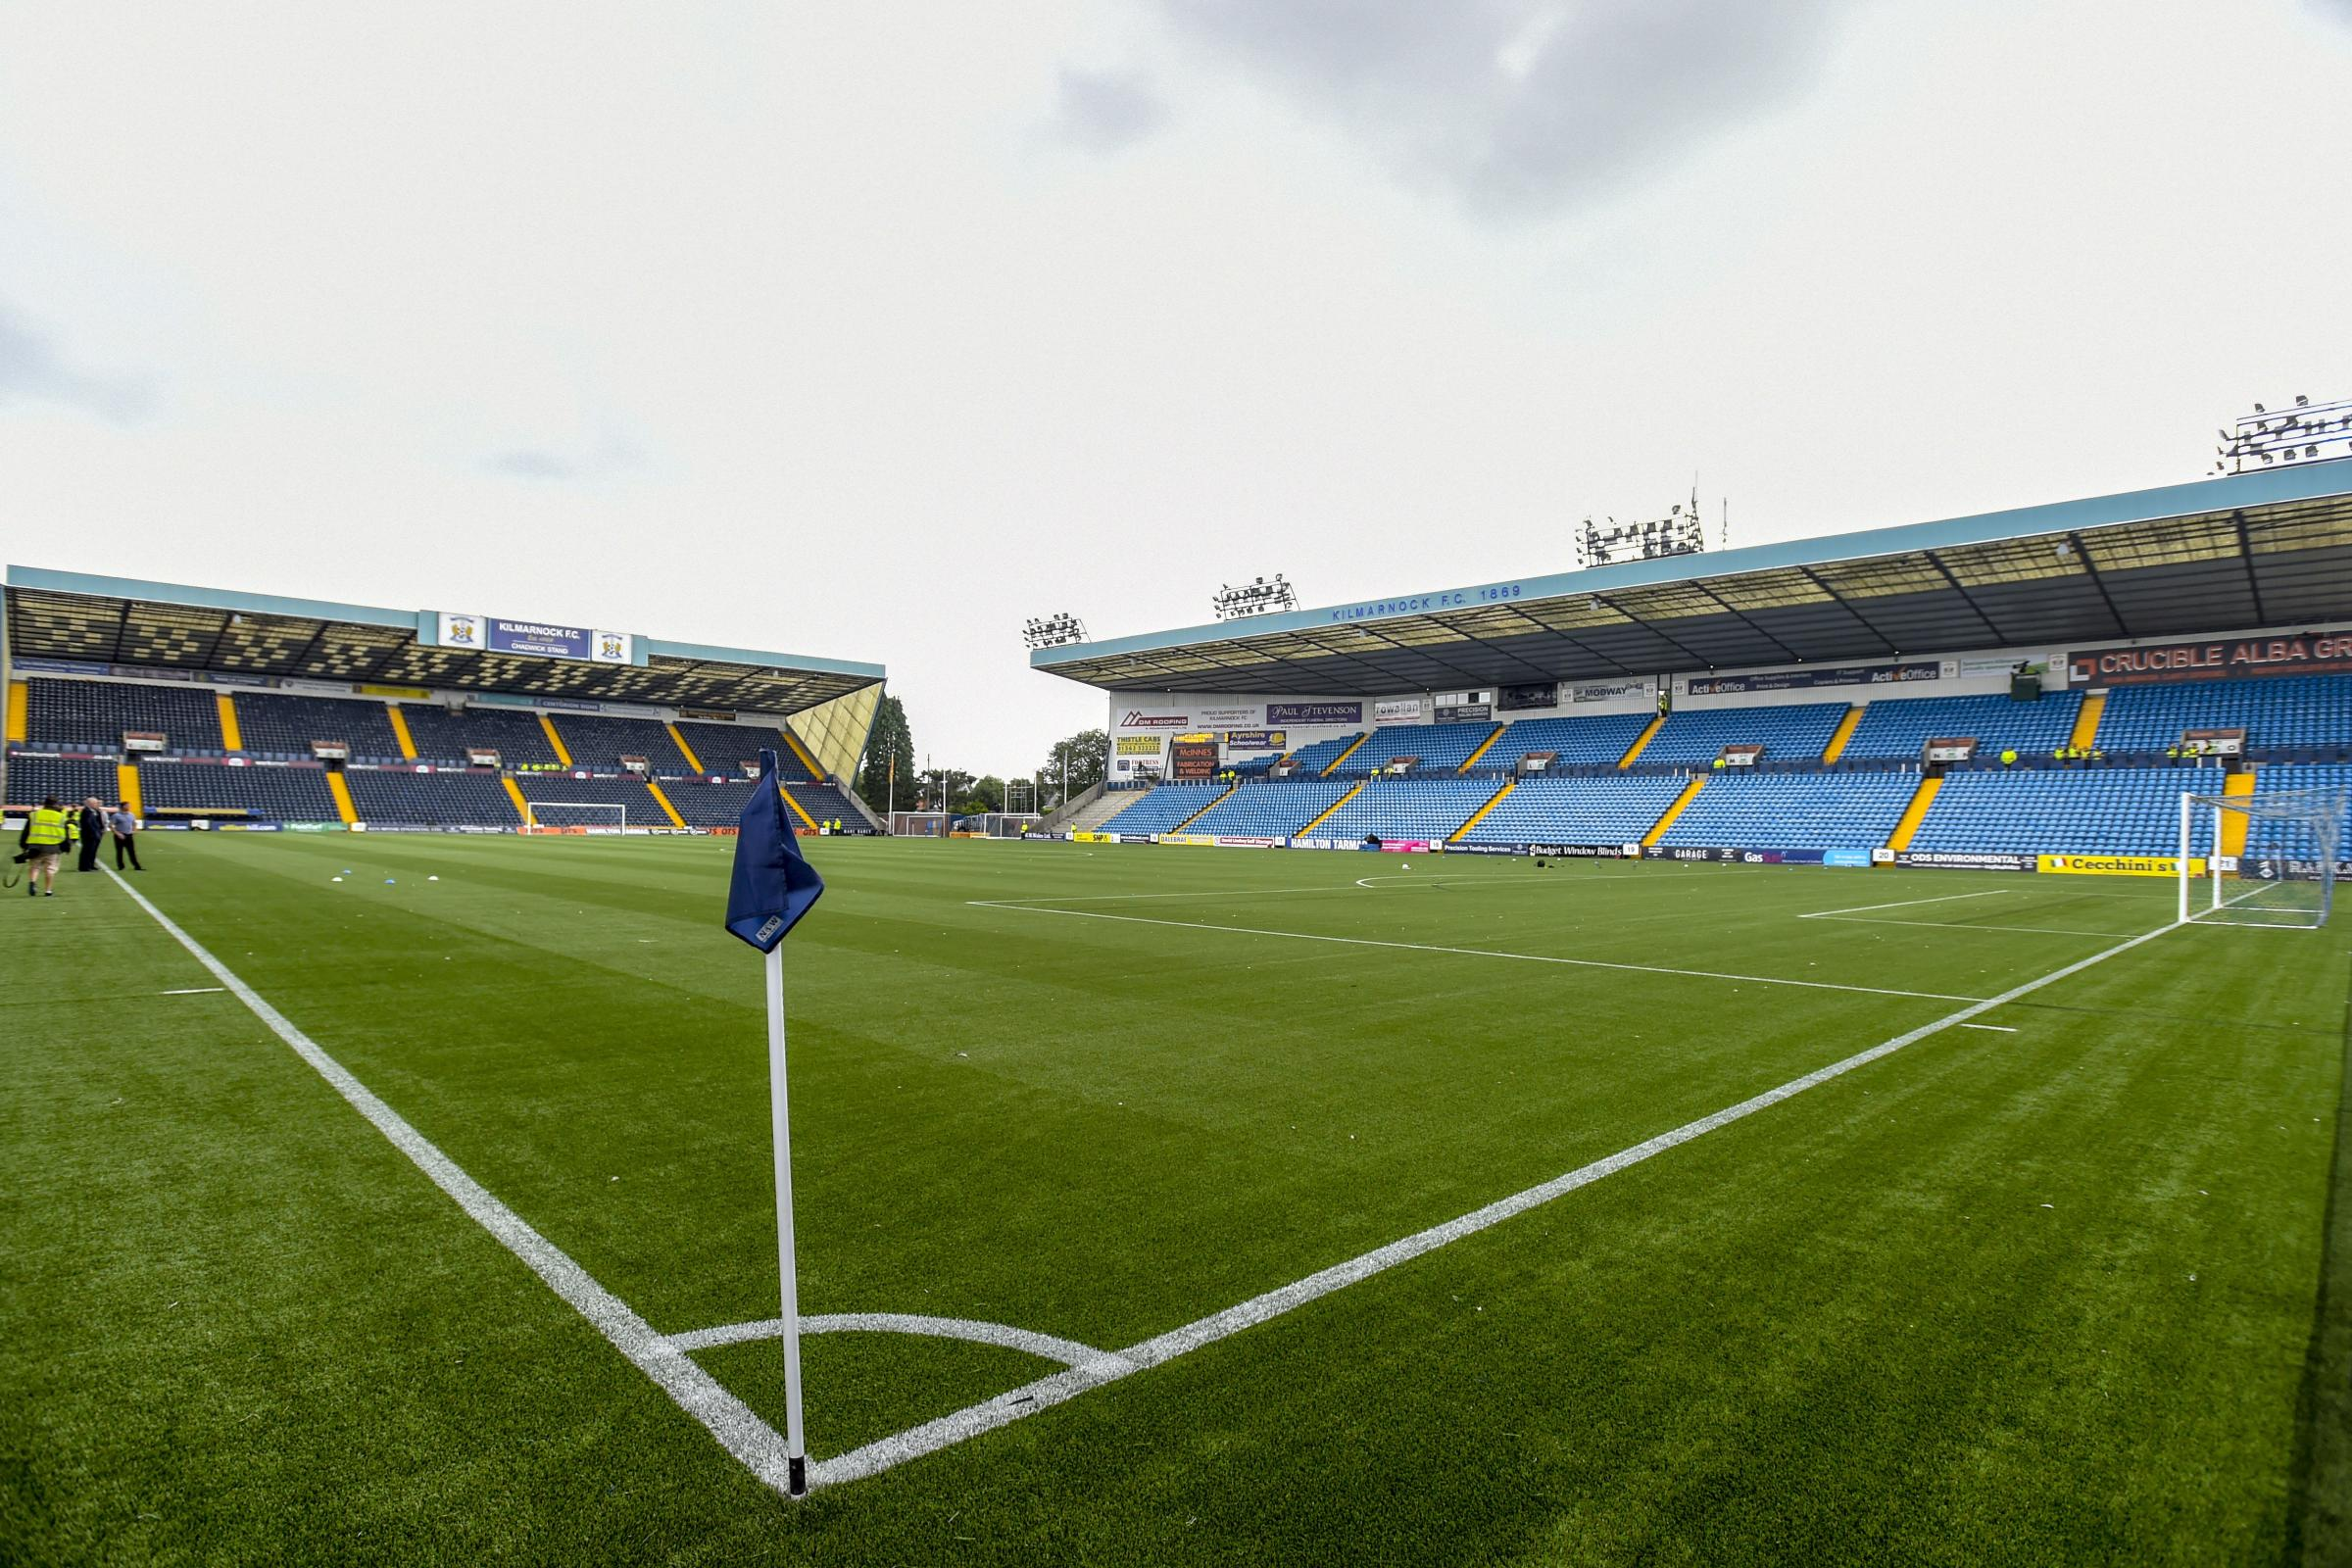 Football fans banned after crowd disorder at Kilmarnock vs Celtic clash